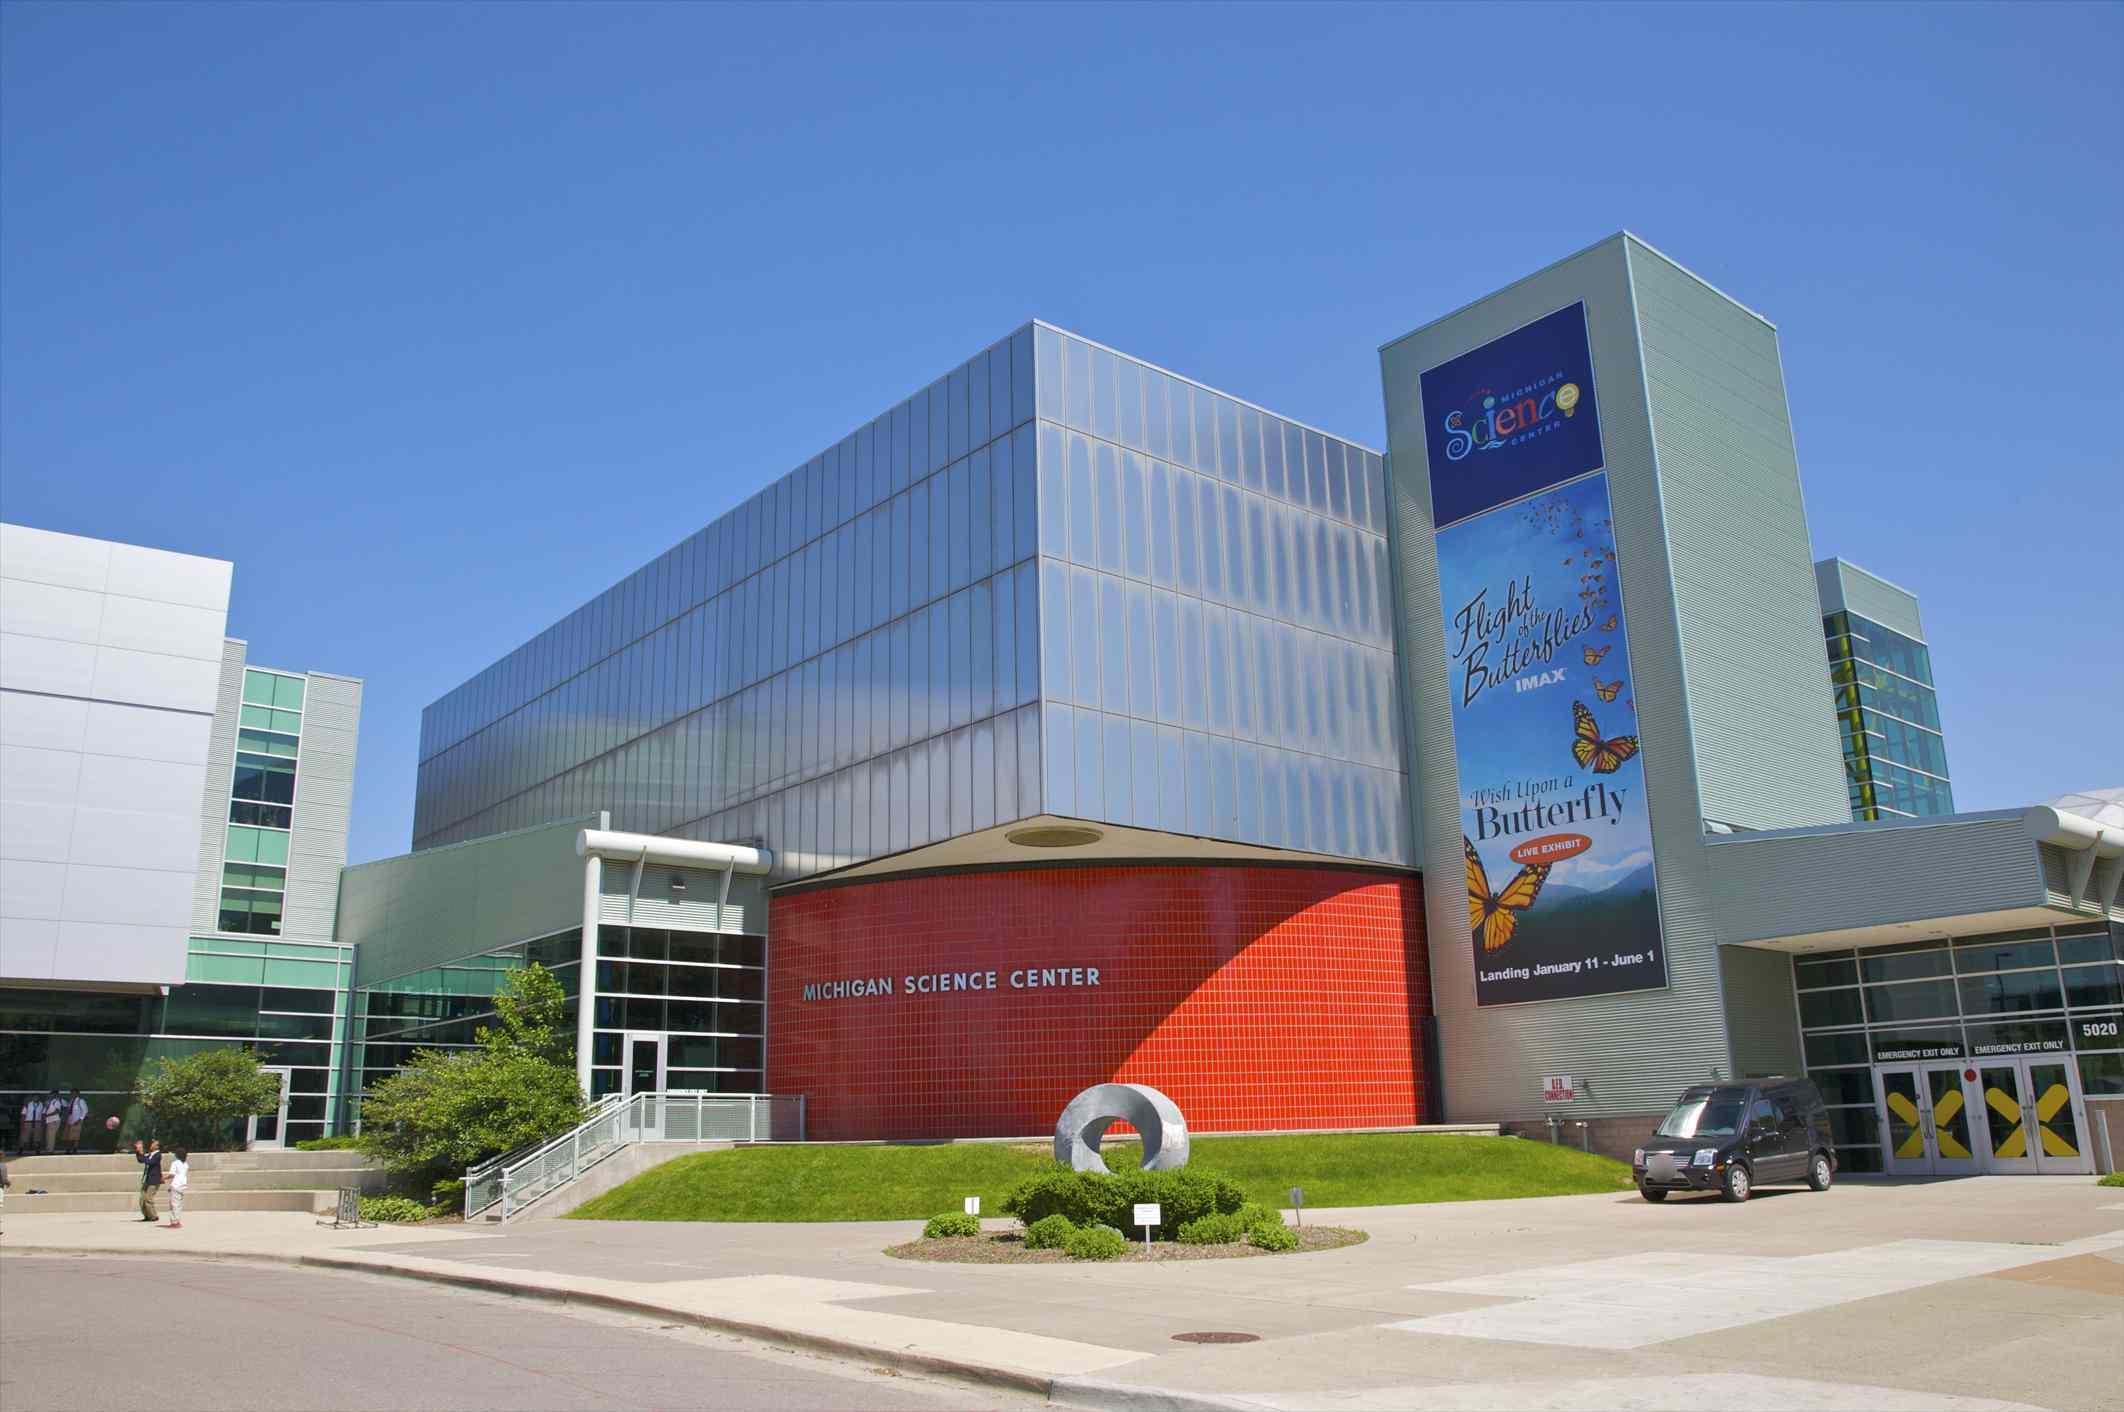 Main entrance to Michigan Science Center